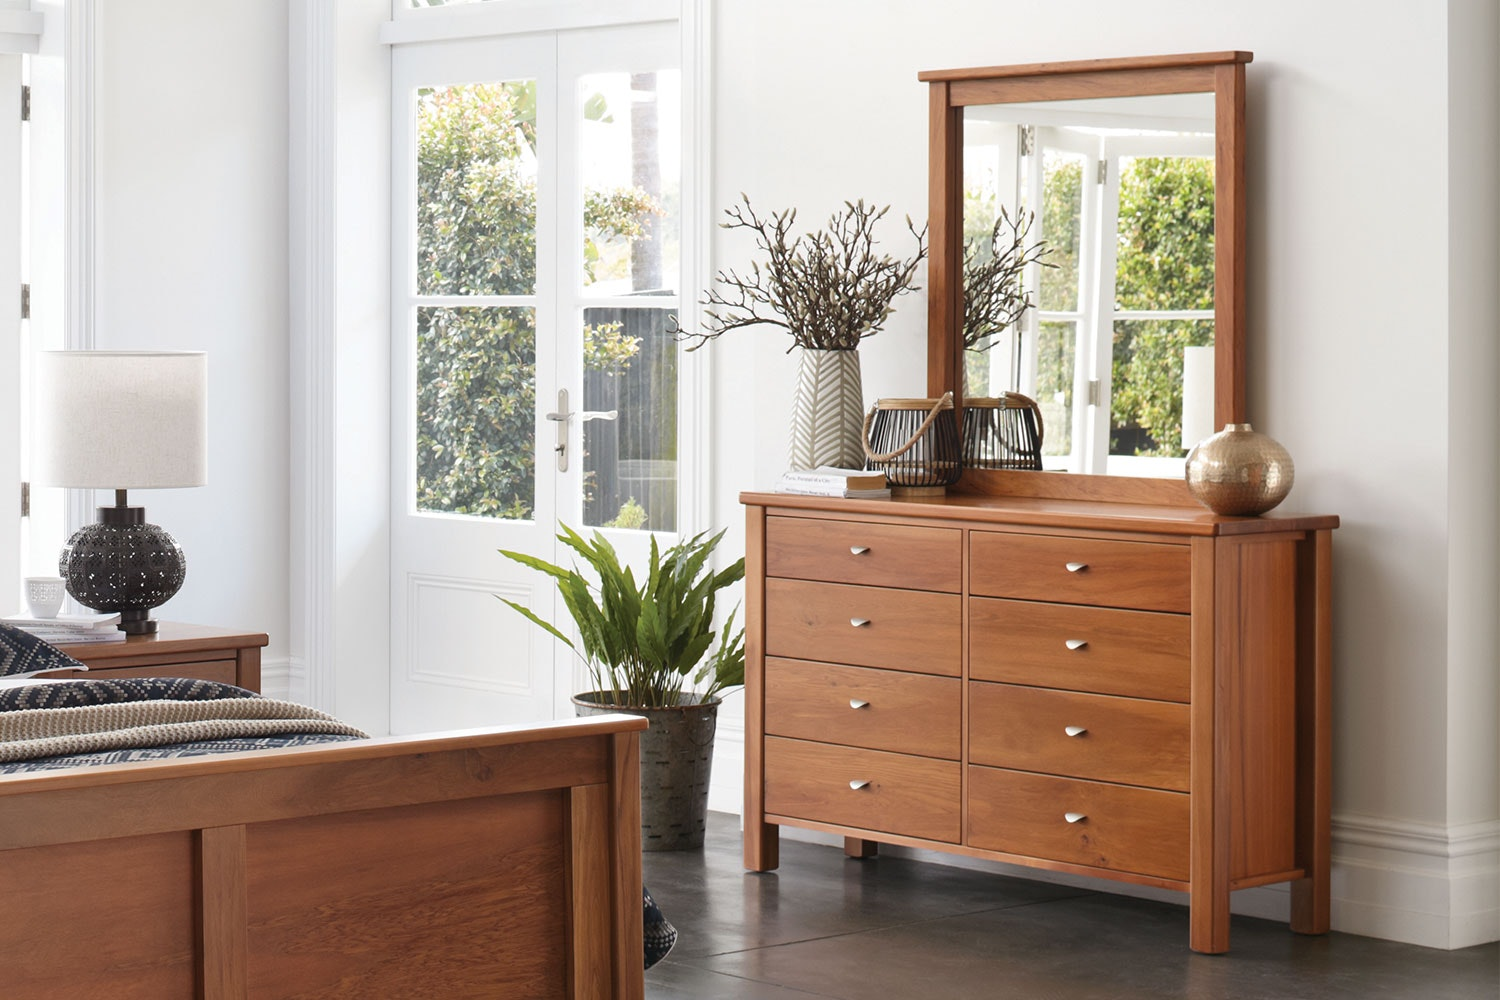 Riversdale Dresser by Marlex Furniture